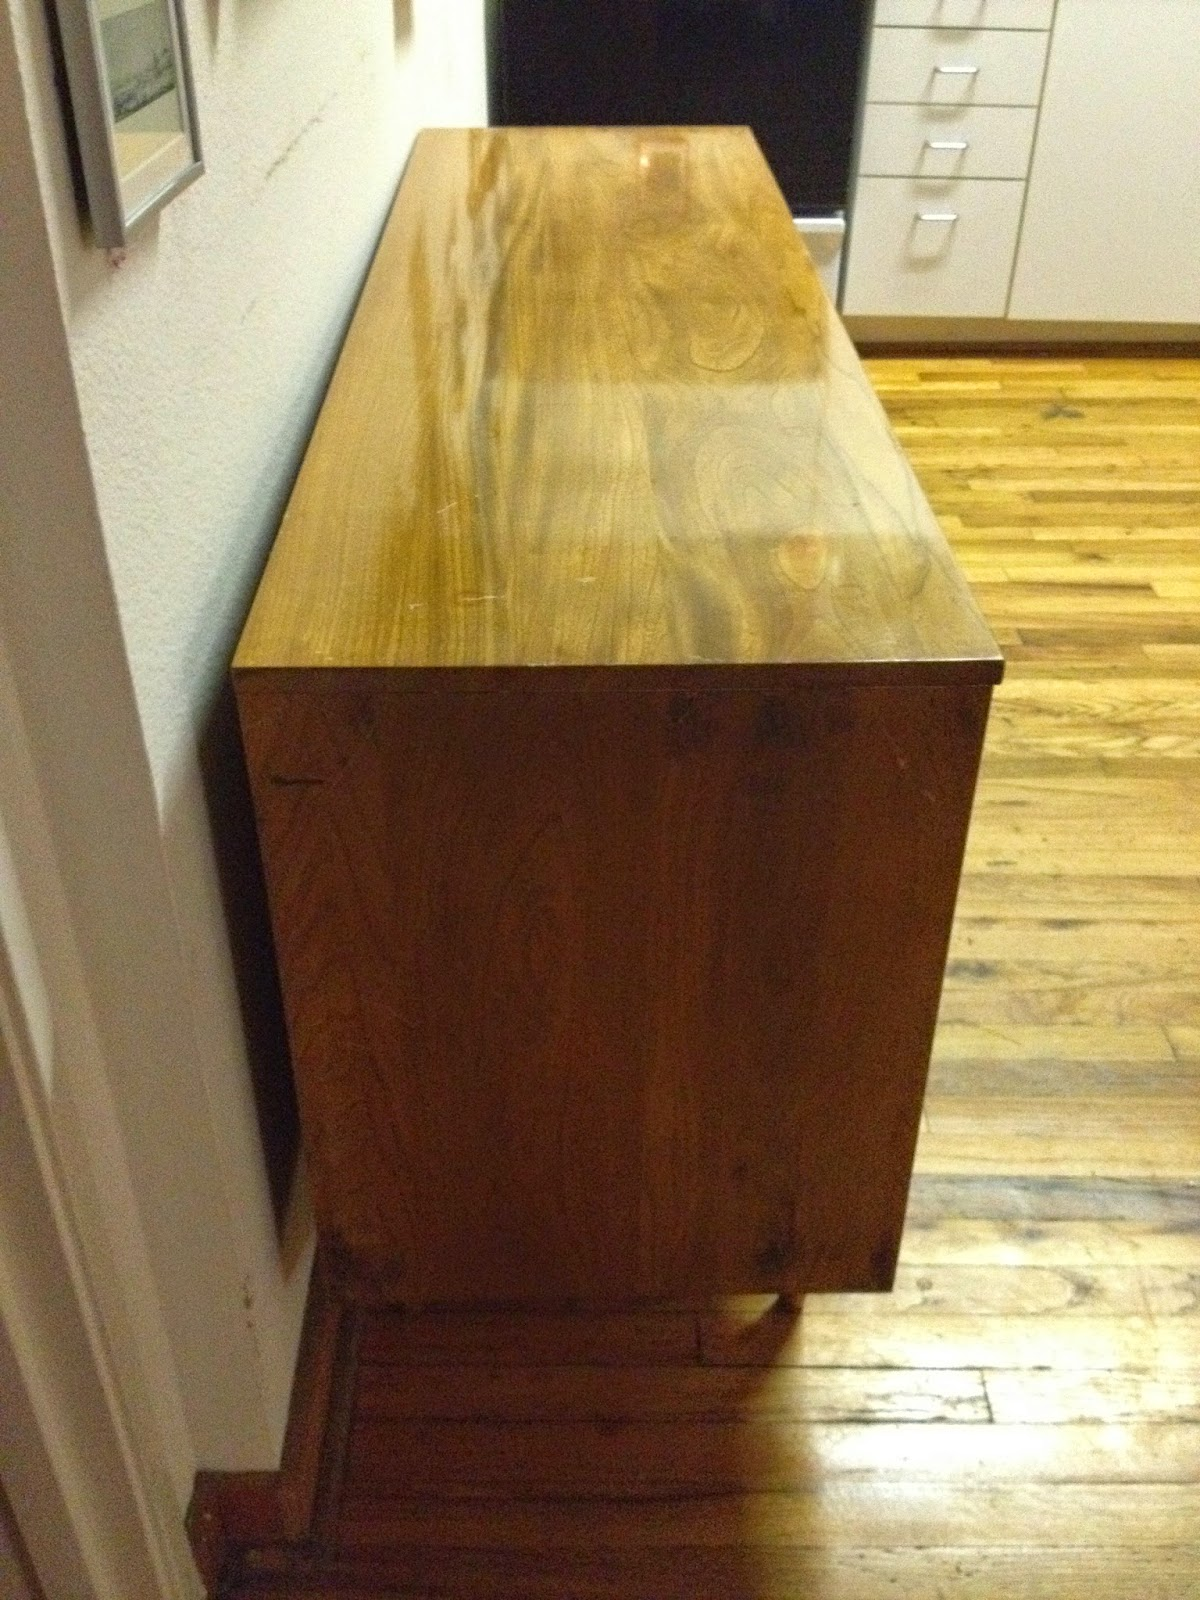 9 Drawer Dresser From The 1960 S By L A Period Furniture Mfg Company Made Of Solid Elm Hardwood In Excellent Condition Vintage